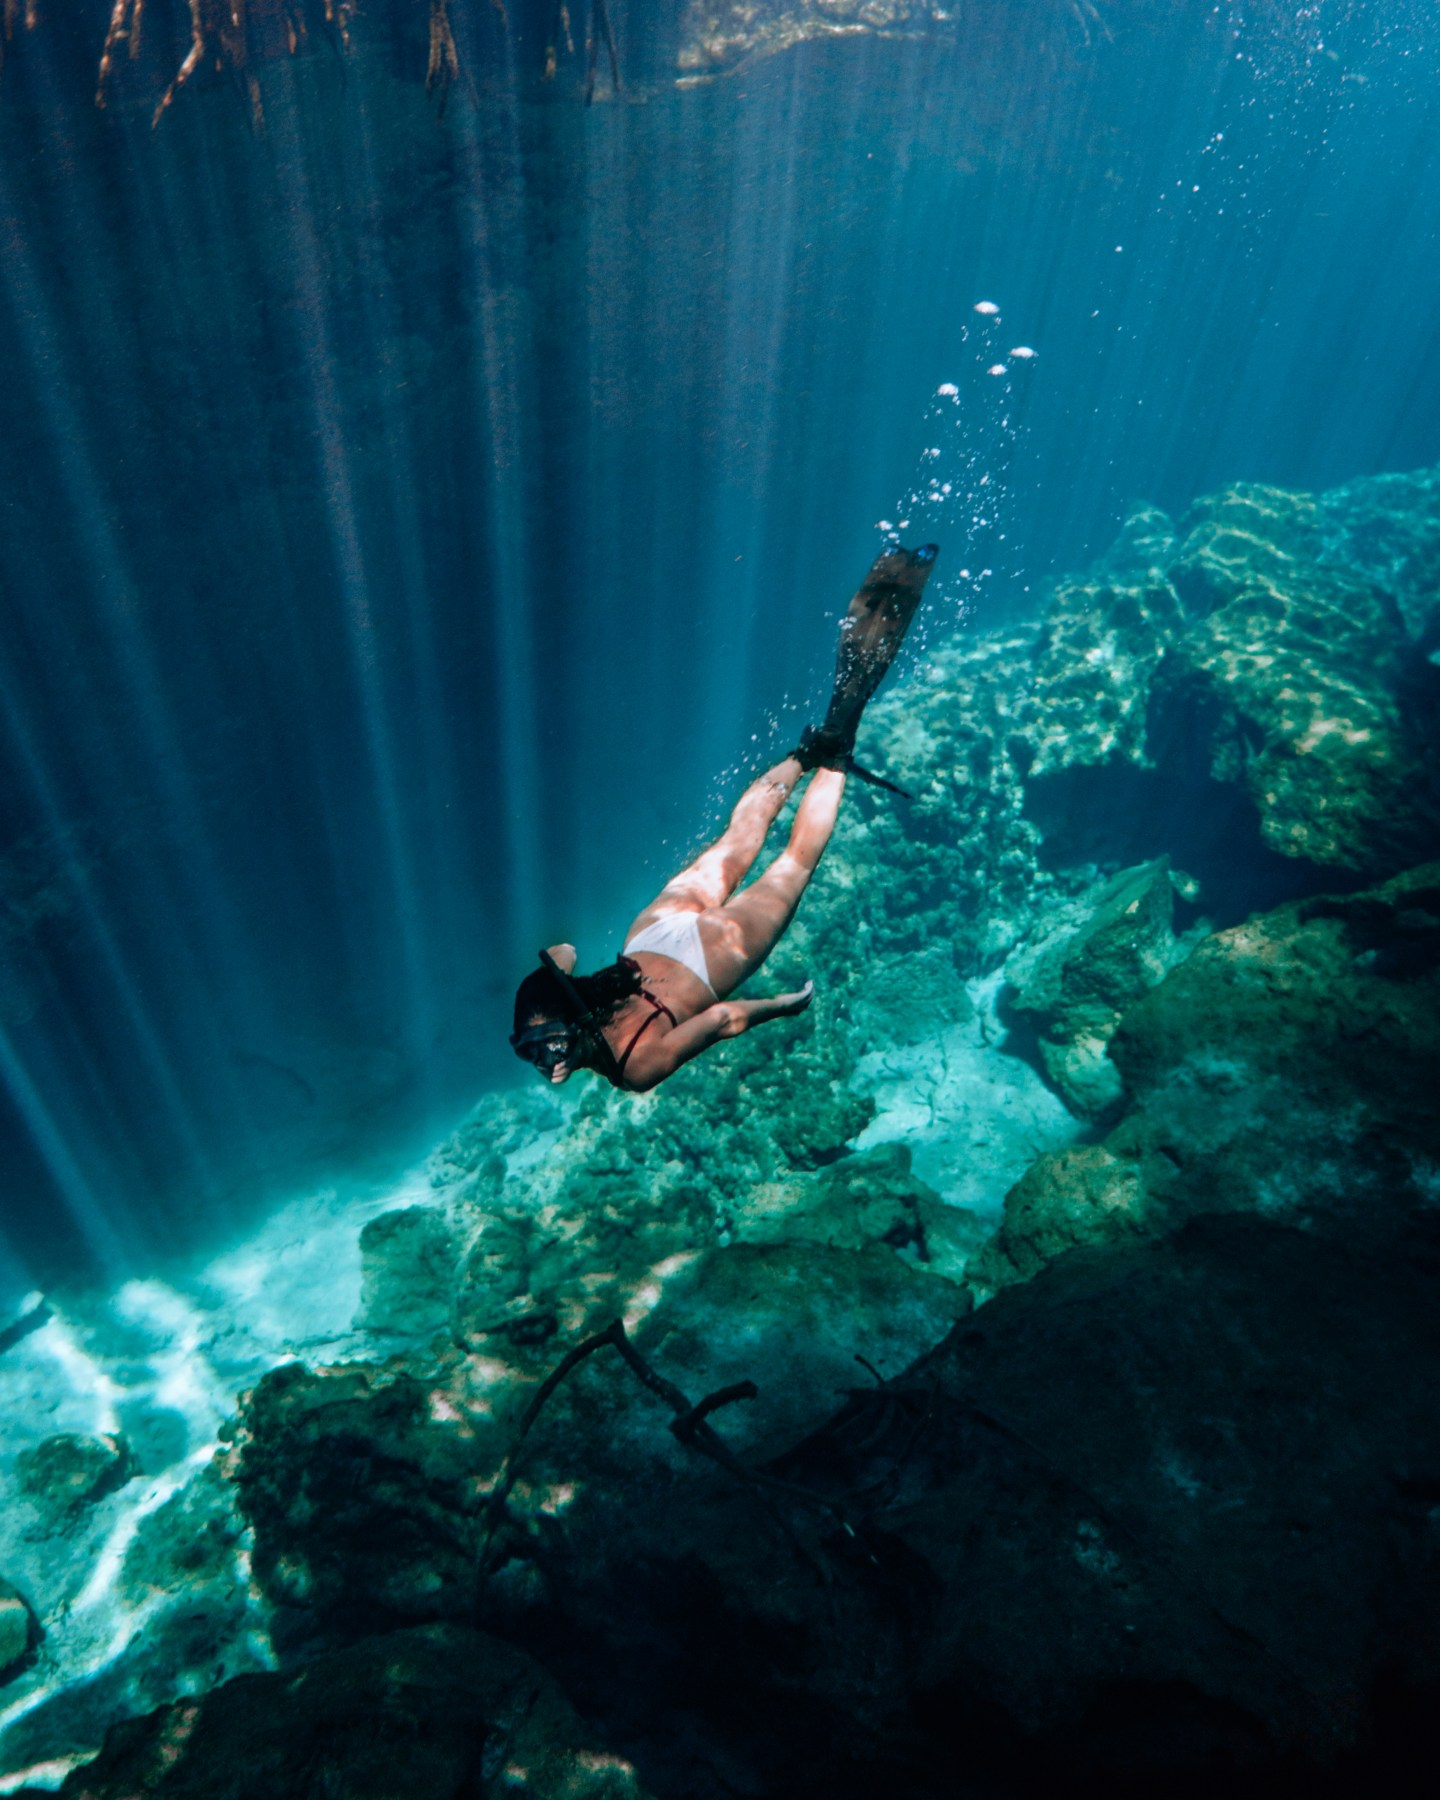 This guide gives you tips for all of the best cenotes in Tulum and the best cenotes near Tulum including what to pack for the best Tulum cenotes and more. If you are looking for day trips from Tulum, check out the best cenotes in Quintana Roo and best cenotes in Yucatan for ideas! | Tulum cenotes photography | cenotes Mexico tulum | cenotes tulum riviera maya | best cenotes in quintana roo | cenotes quintana roo | cenotes in playa del carmen